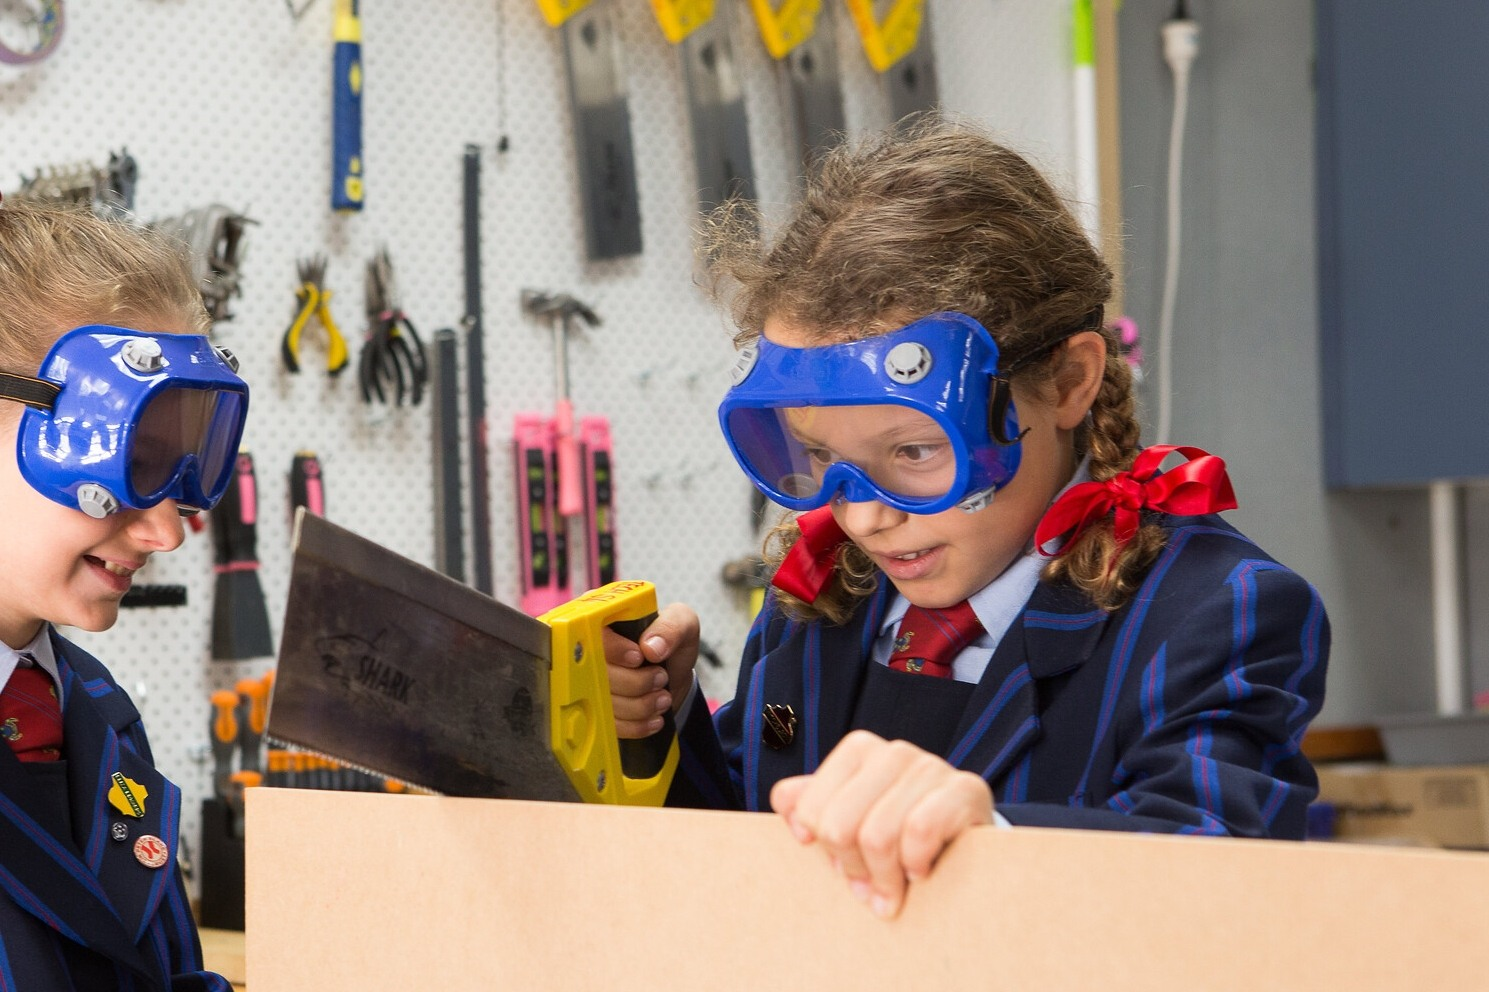 The Junior school MakerSpace work area presents readily available materials and items with which to invent